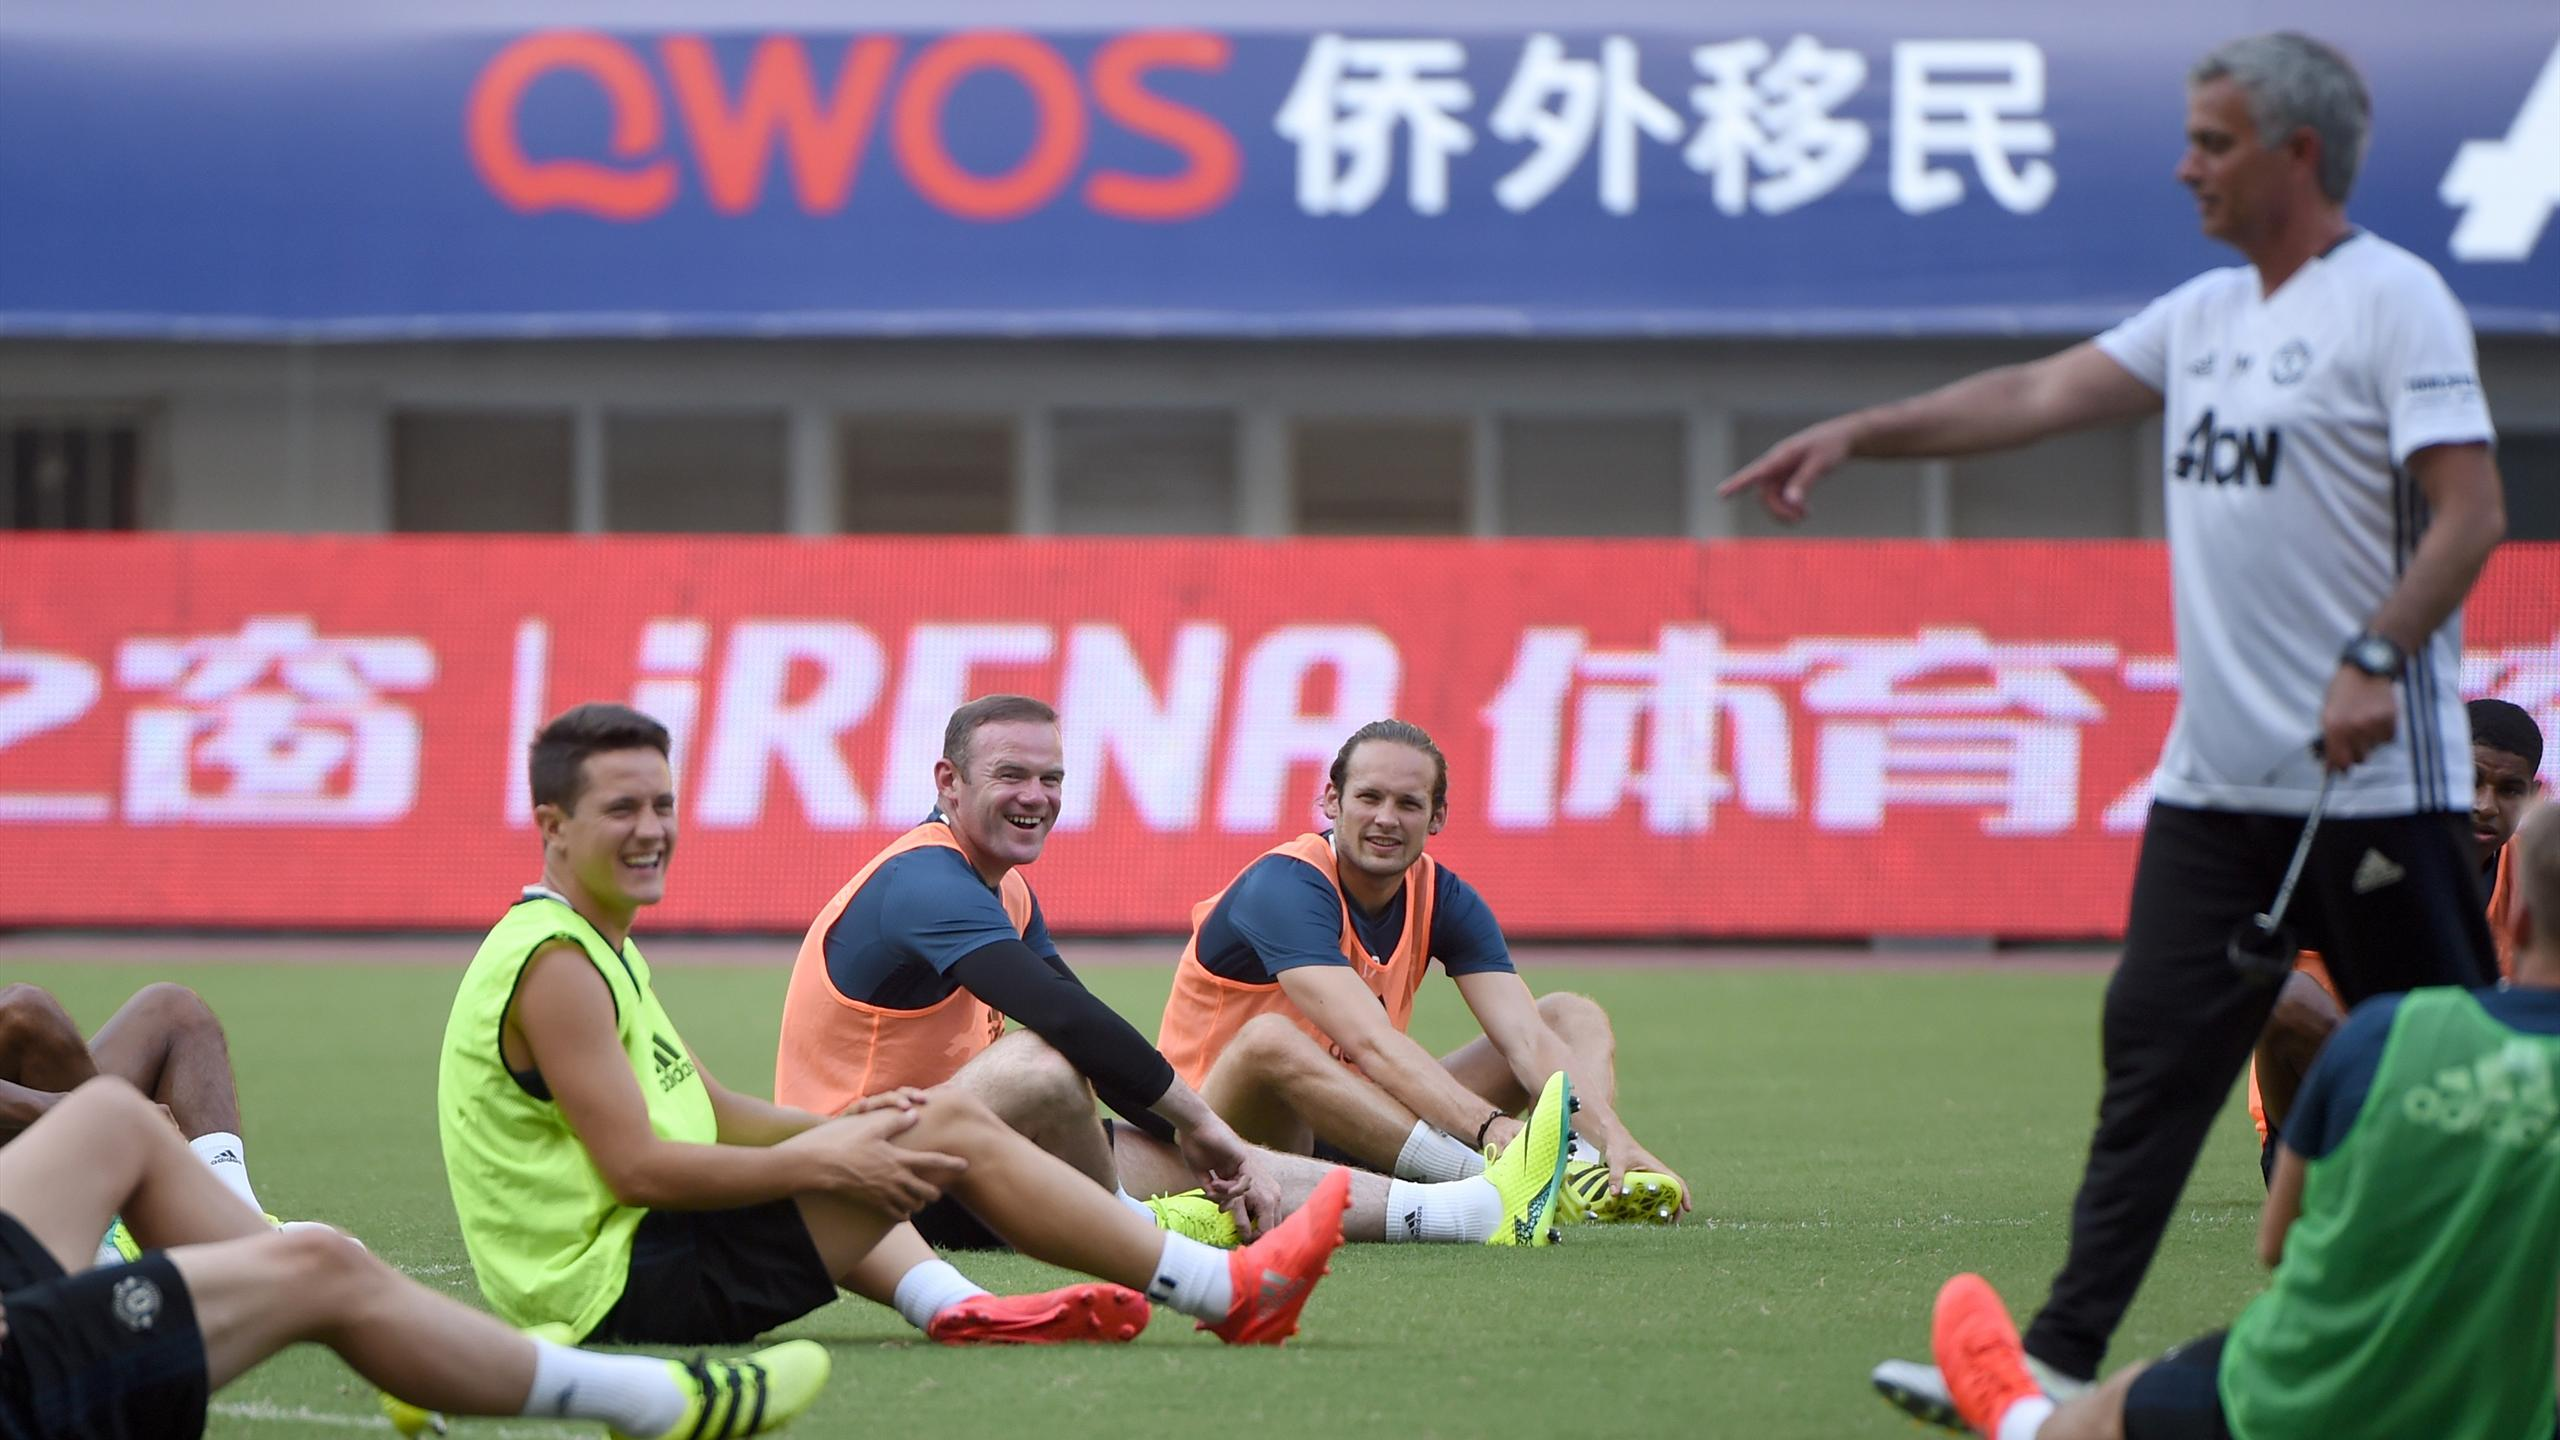 Manchester United's Wayne Rooney (2nd L) smiles during a training session ahead of the 2016 International Champions Cup football match between Manchester United and Dortmund in Shanghai